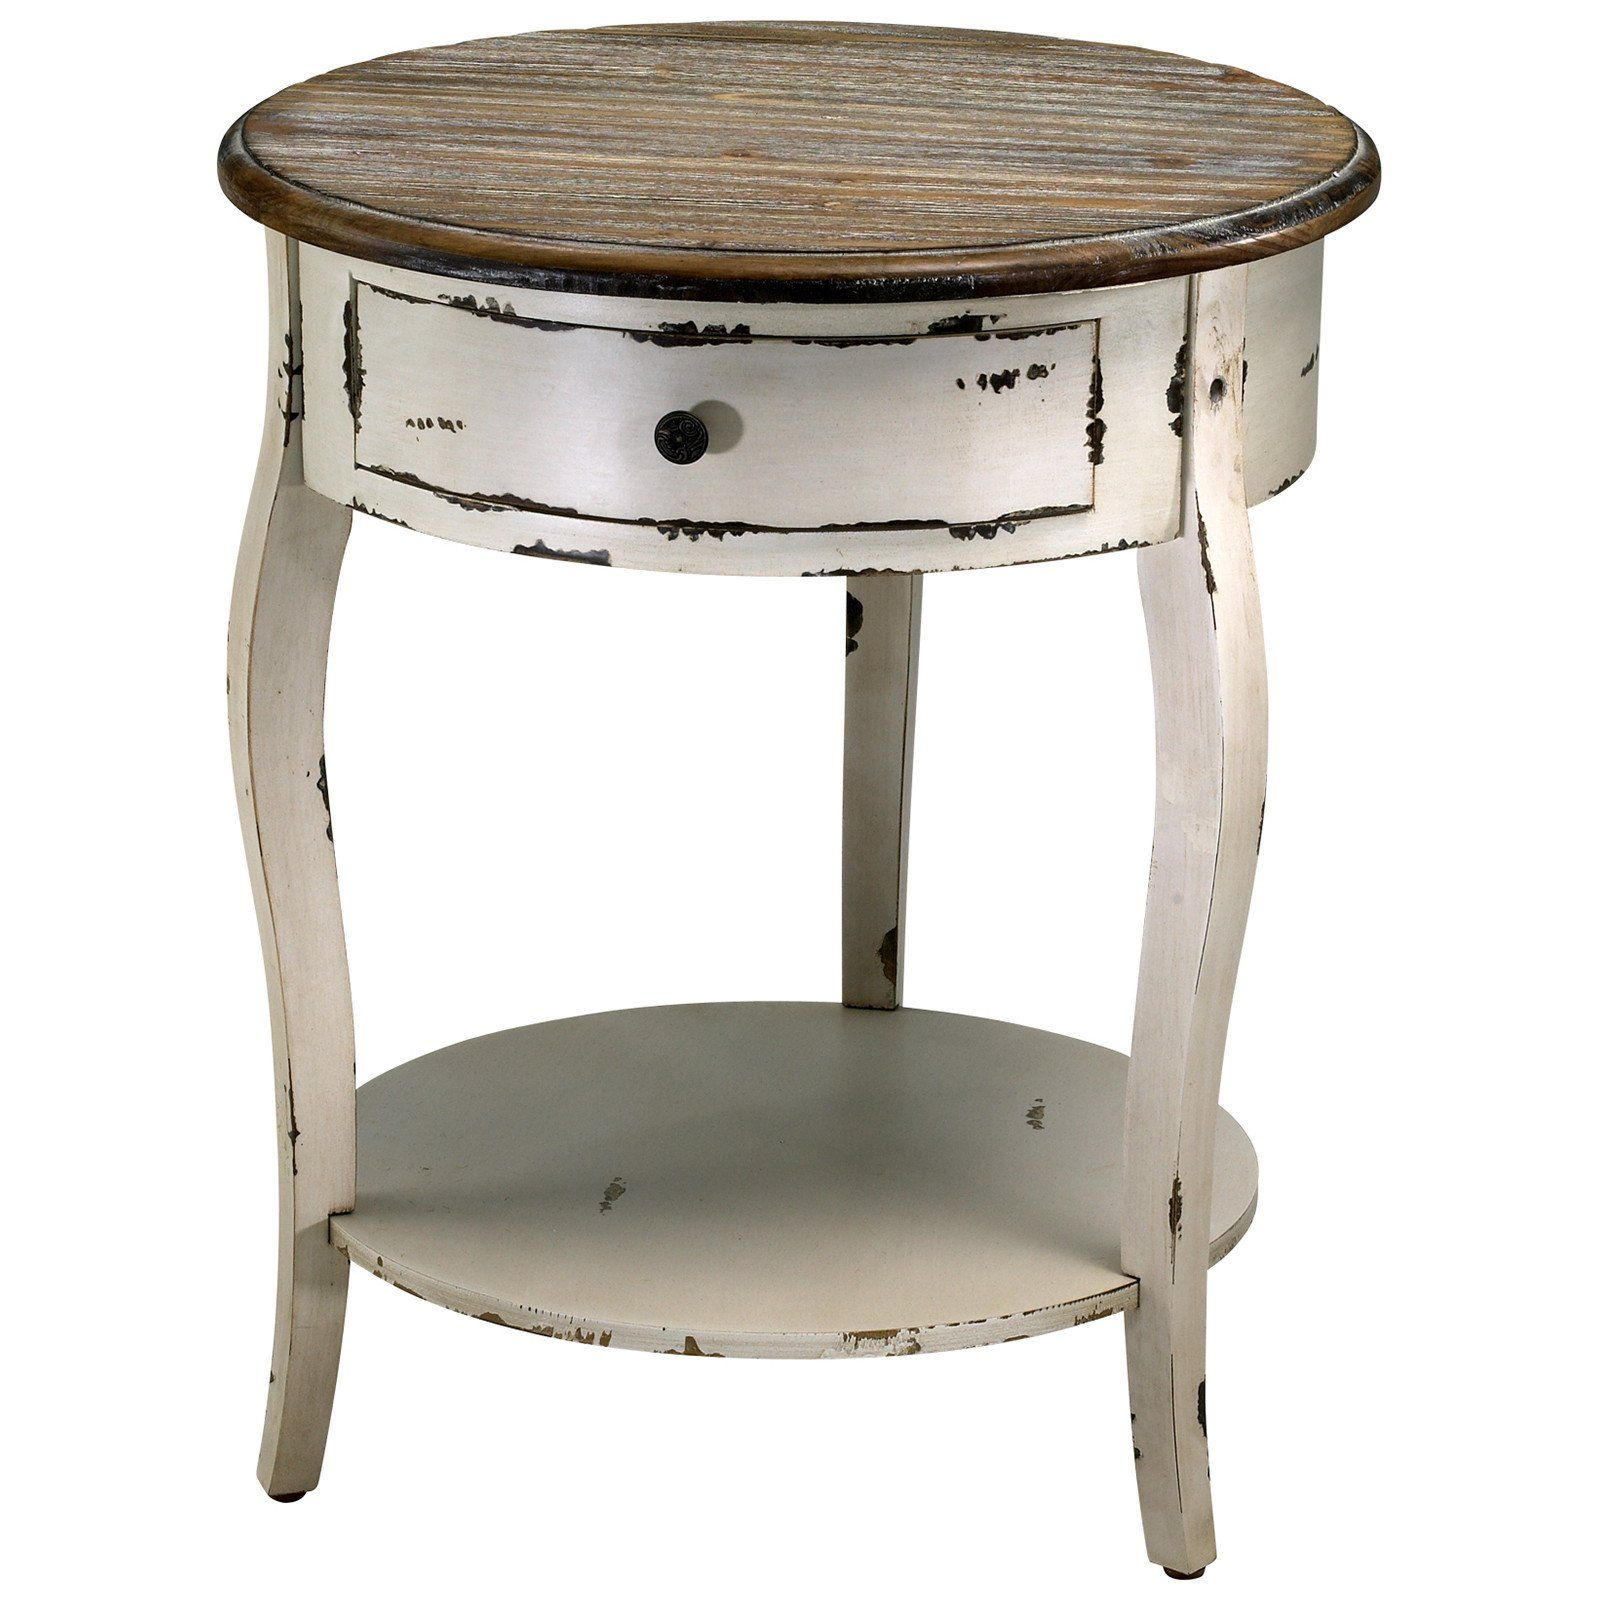 abelard side table distressed white and gray products round wood accent red home accessories chaise furniture copper small antique long nightstand black grey marble coffee counter